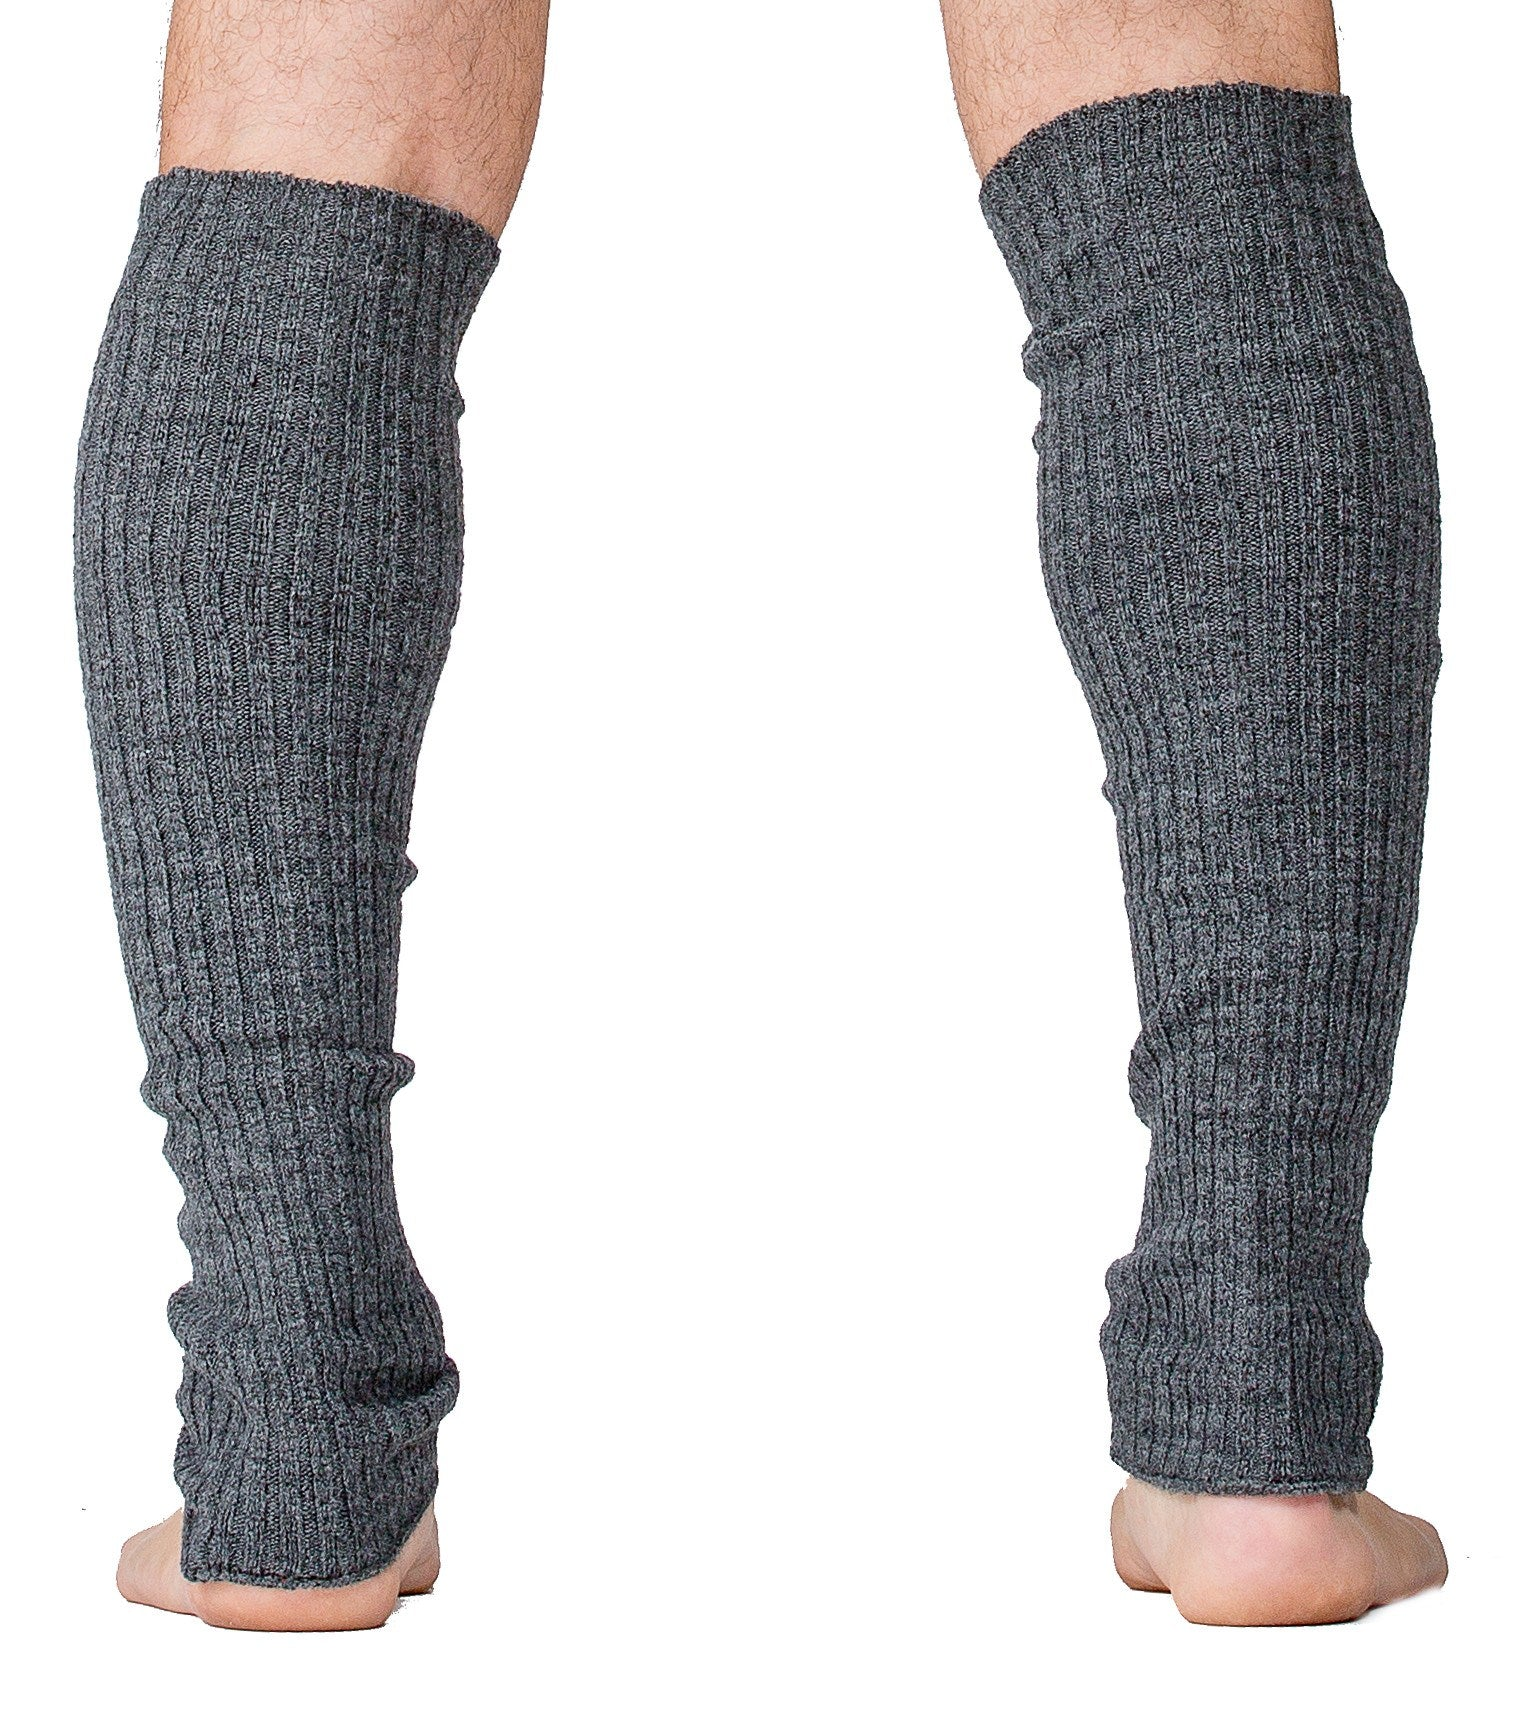 Men's Leg Warmers 16 Inch Stretch Knit Ribbed High Quality KD dance New York Made In USA @KDdanceNewYork #MadeInUSA - 1